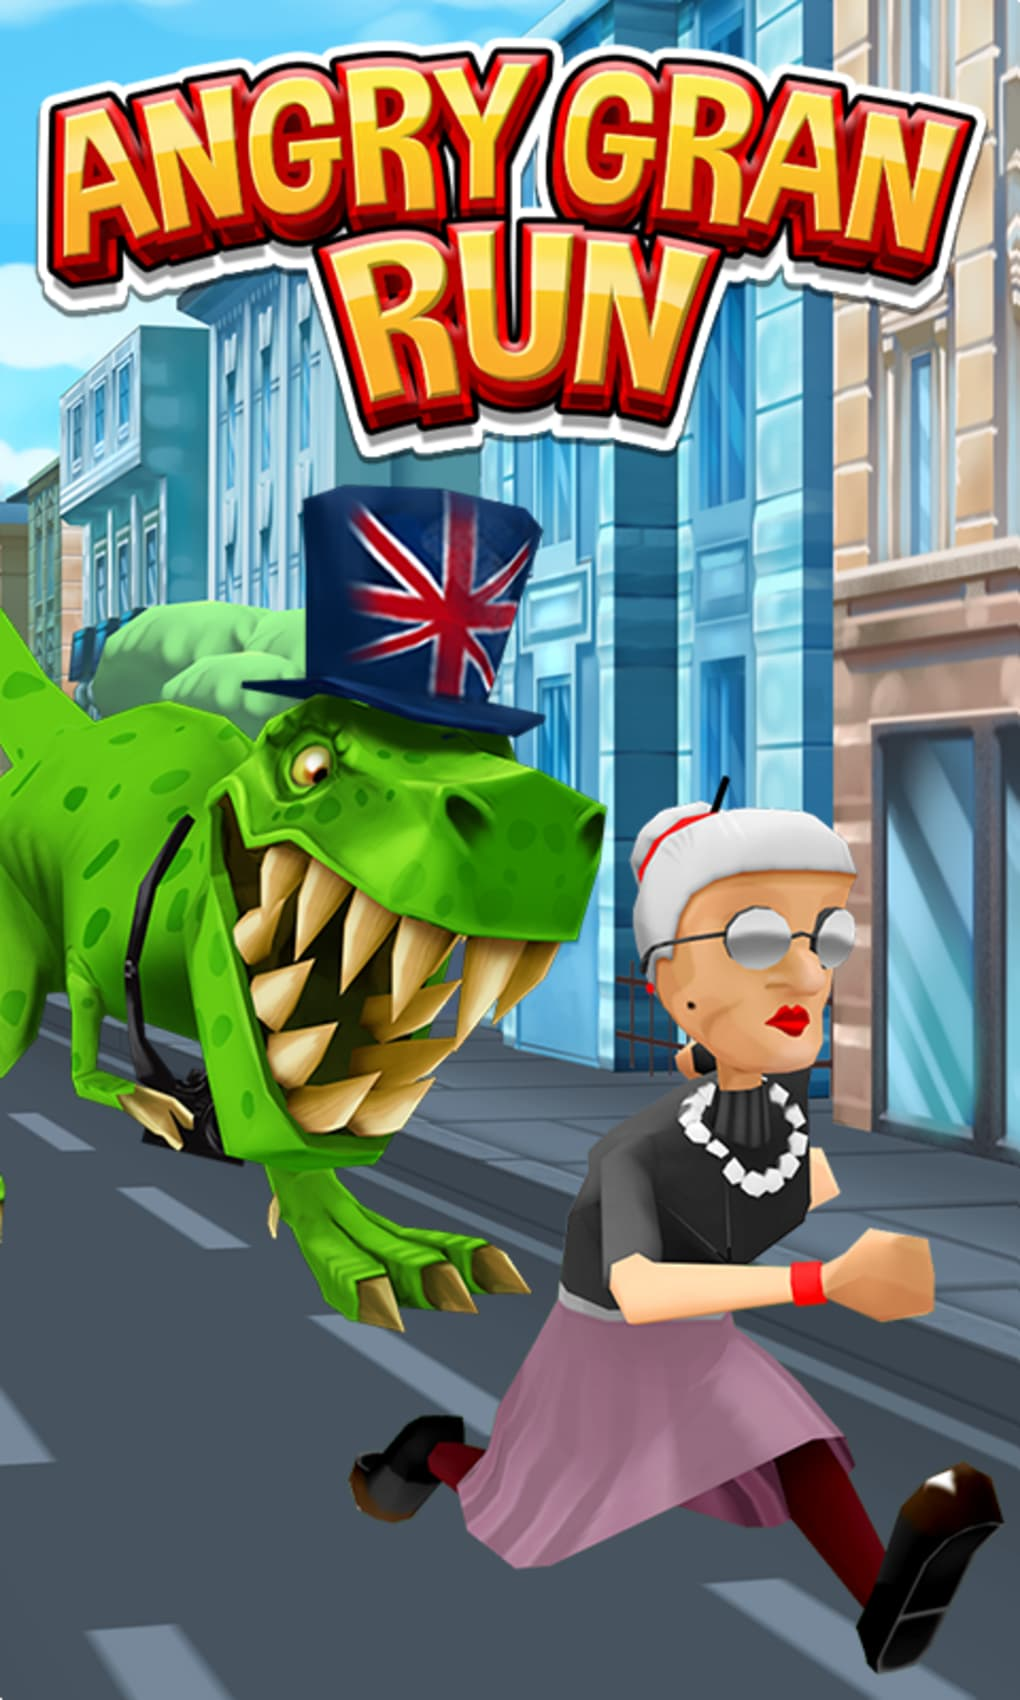 Angry granny run game free download.